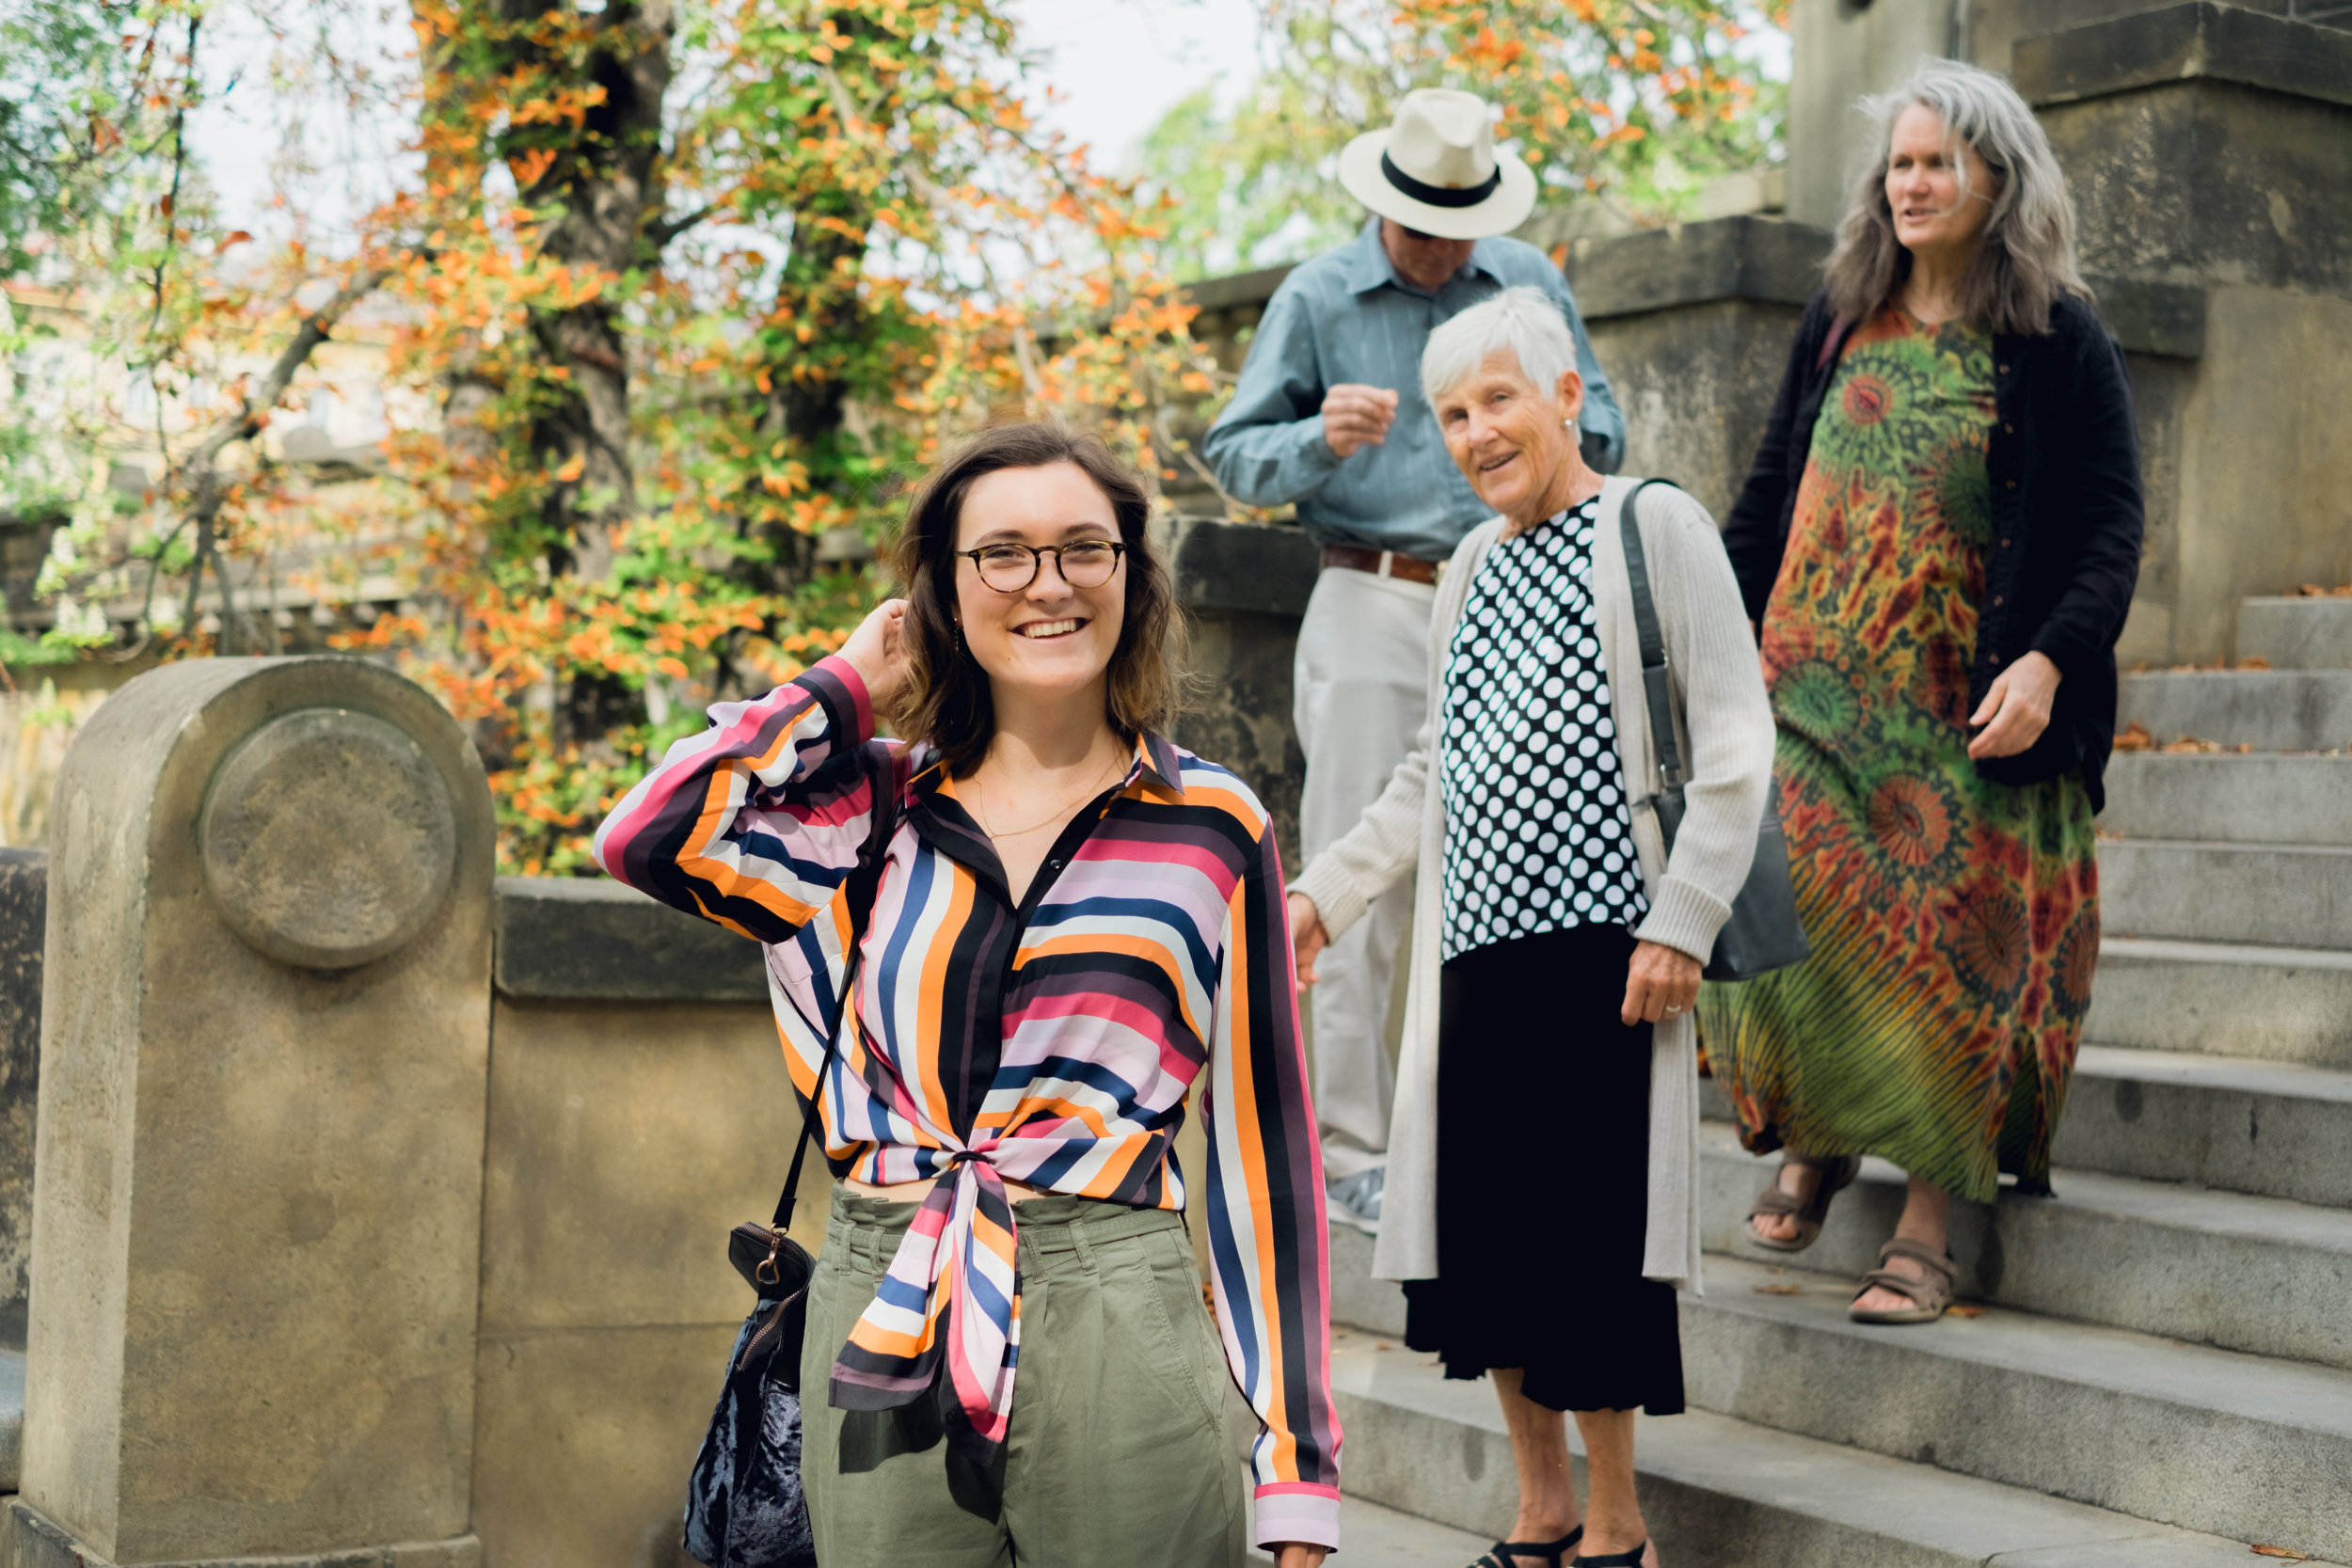 family vacation - the cooper family | prague, czech republic